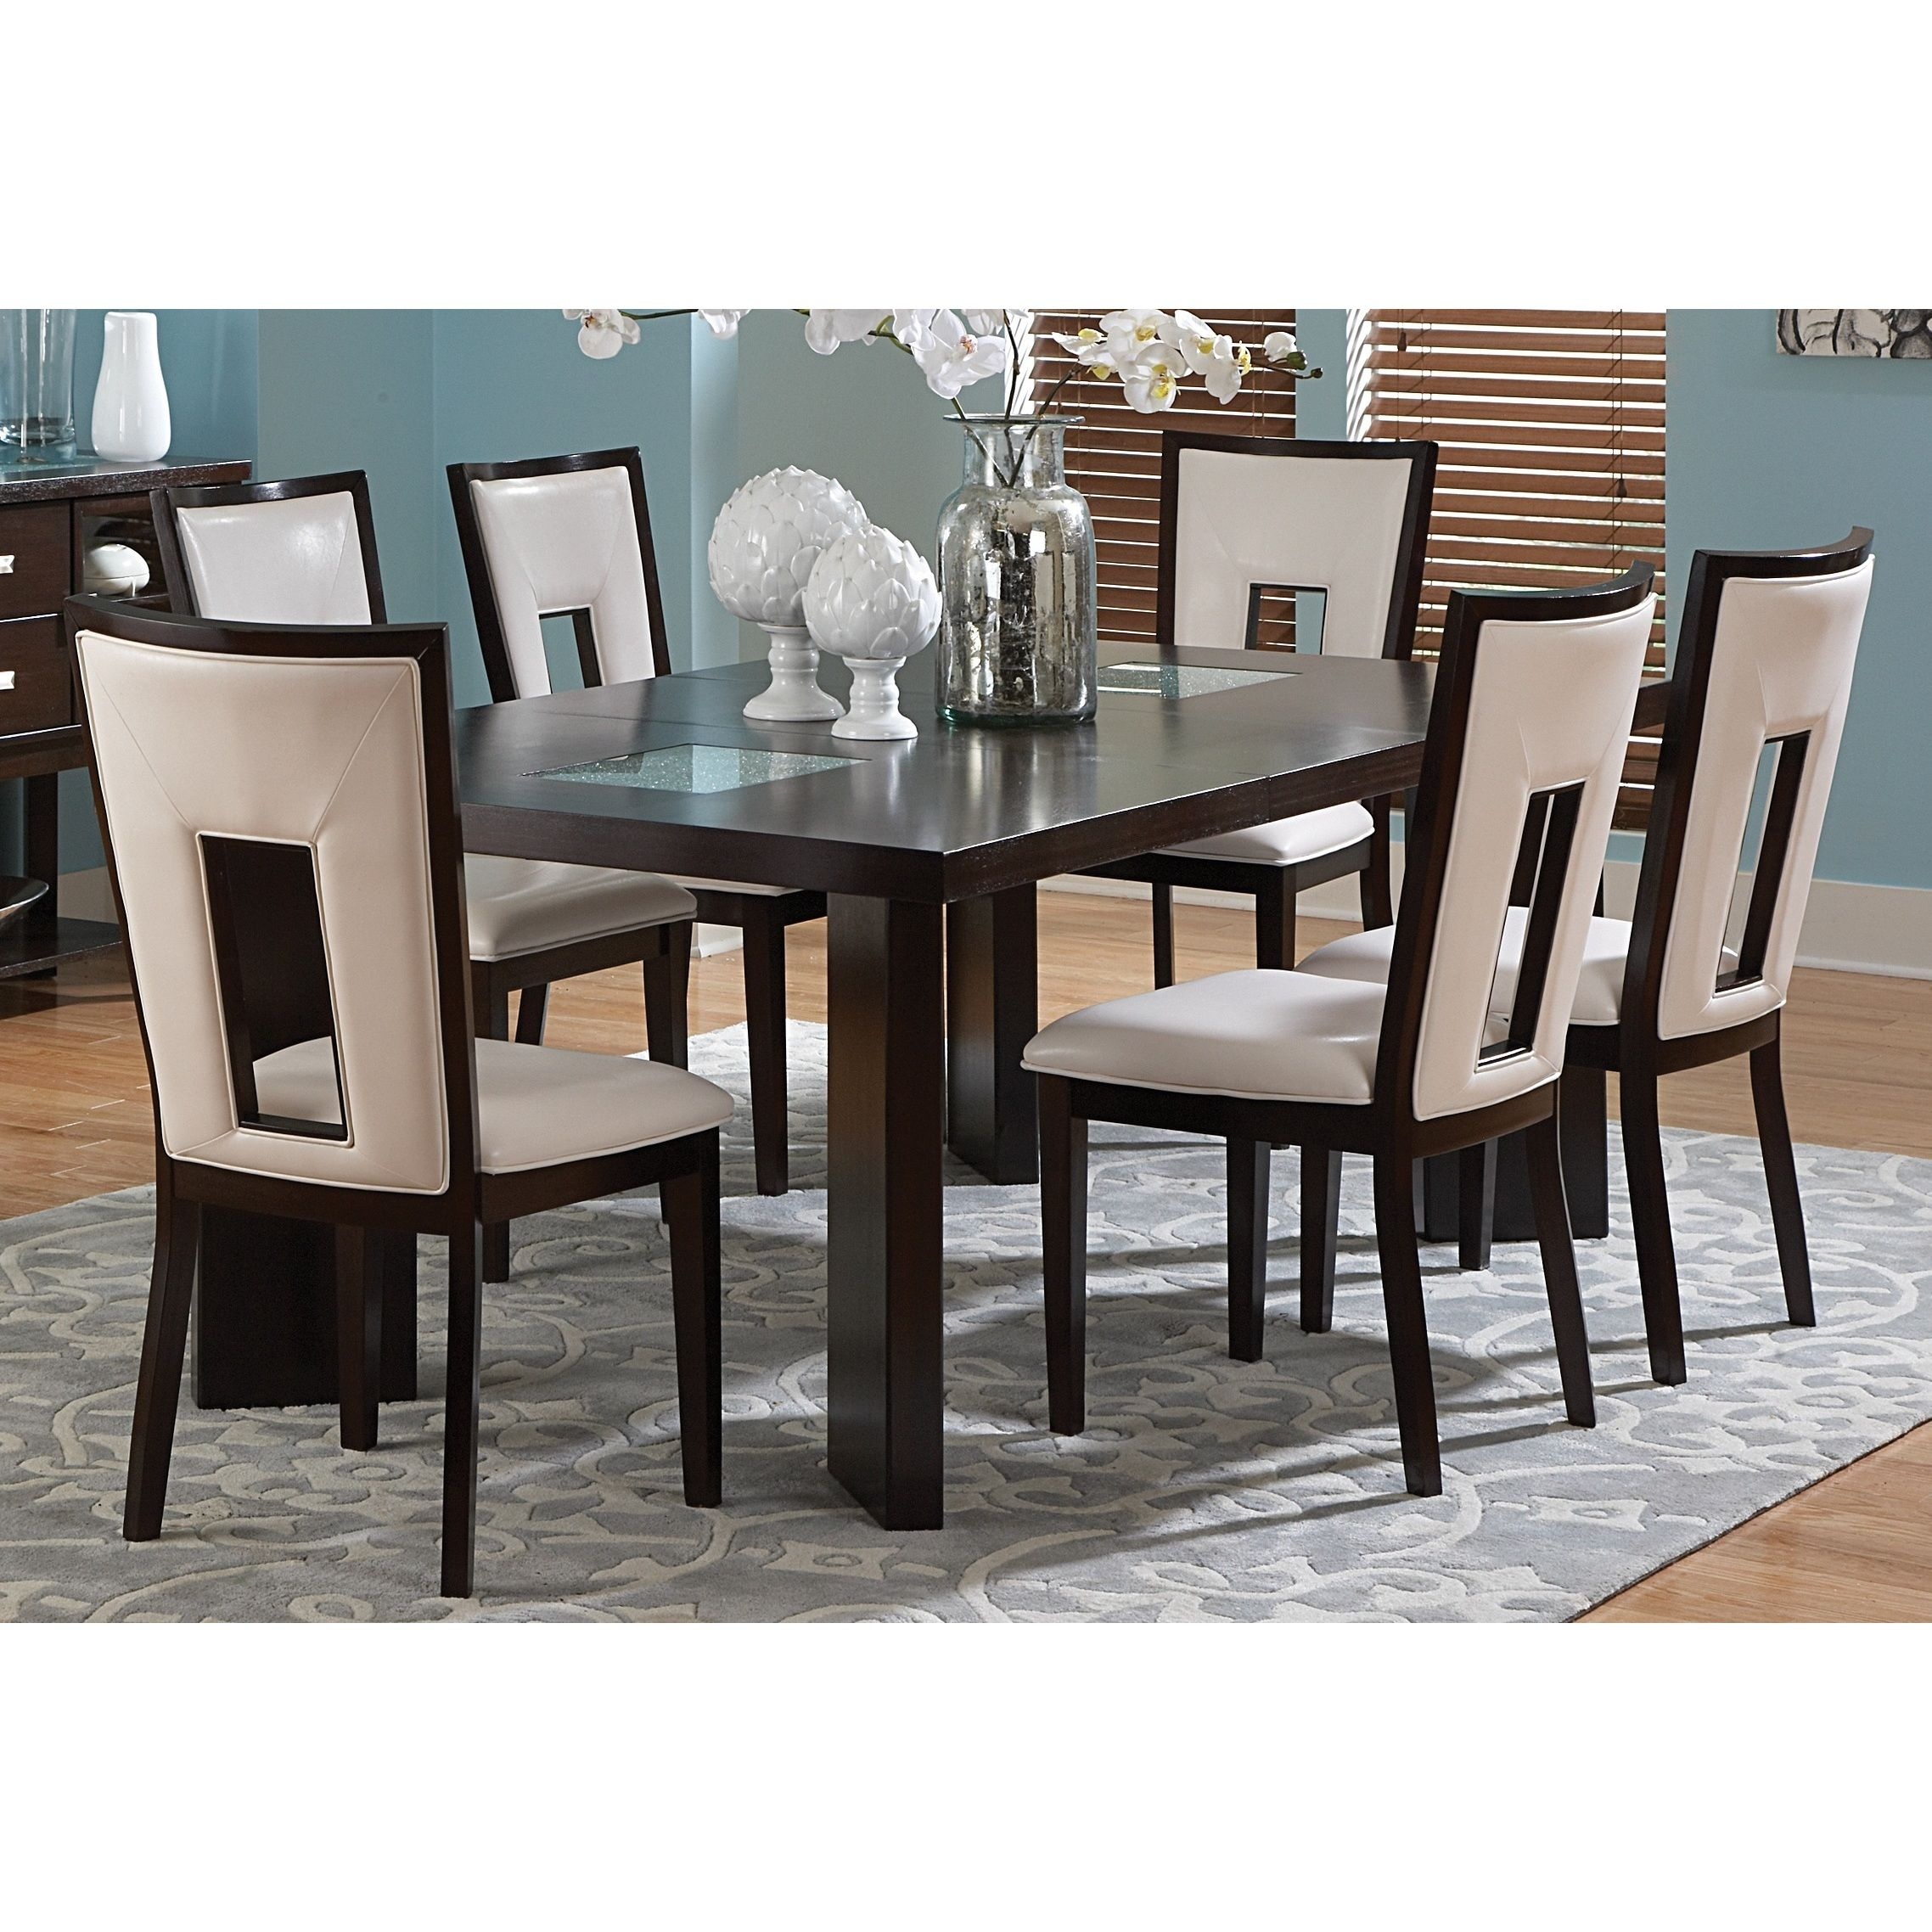 Greyson Living Domino Medium Espresso Dining Set by Greyson Living